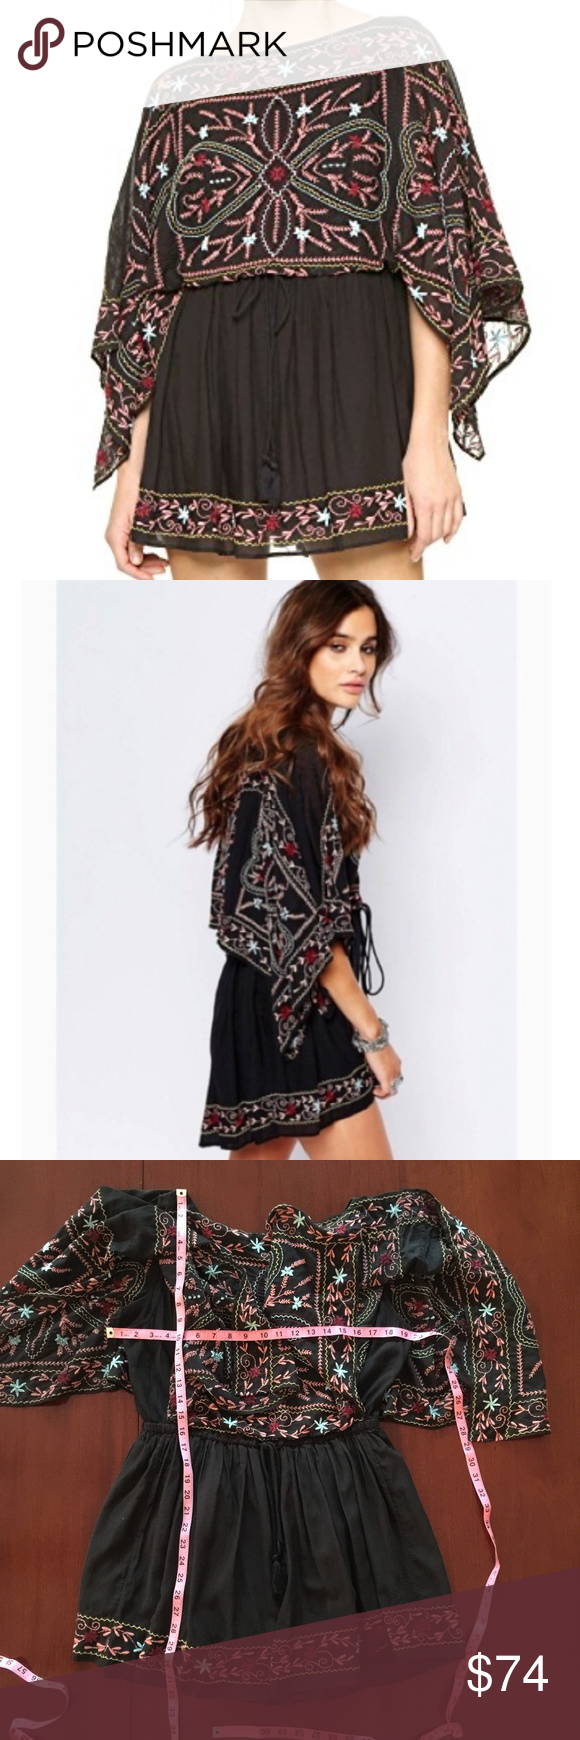 818c3824362 Free People Black Embroidered Frida Dress Small Self  52% rayon